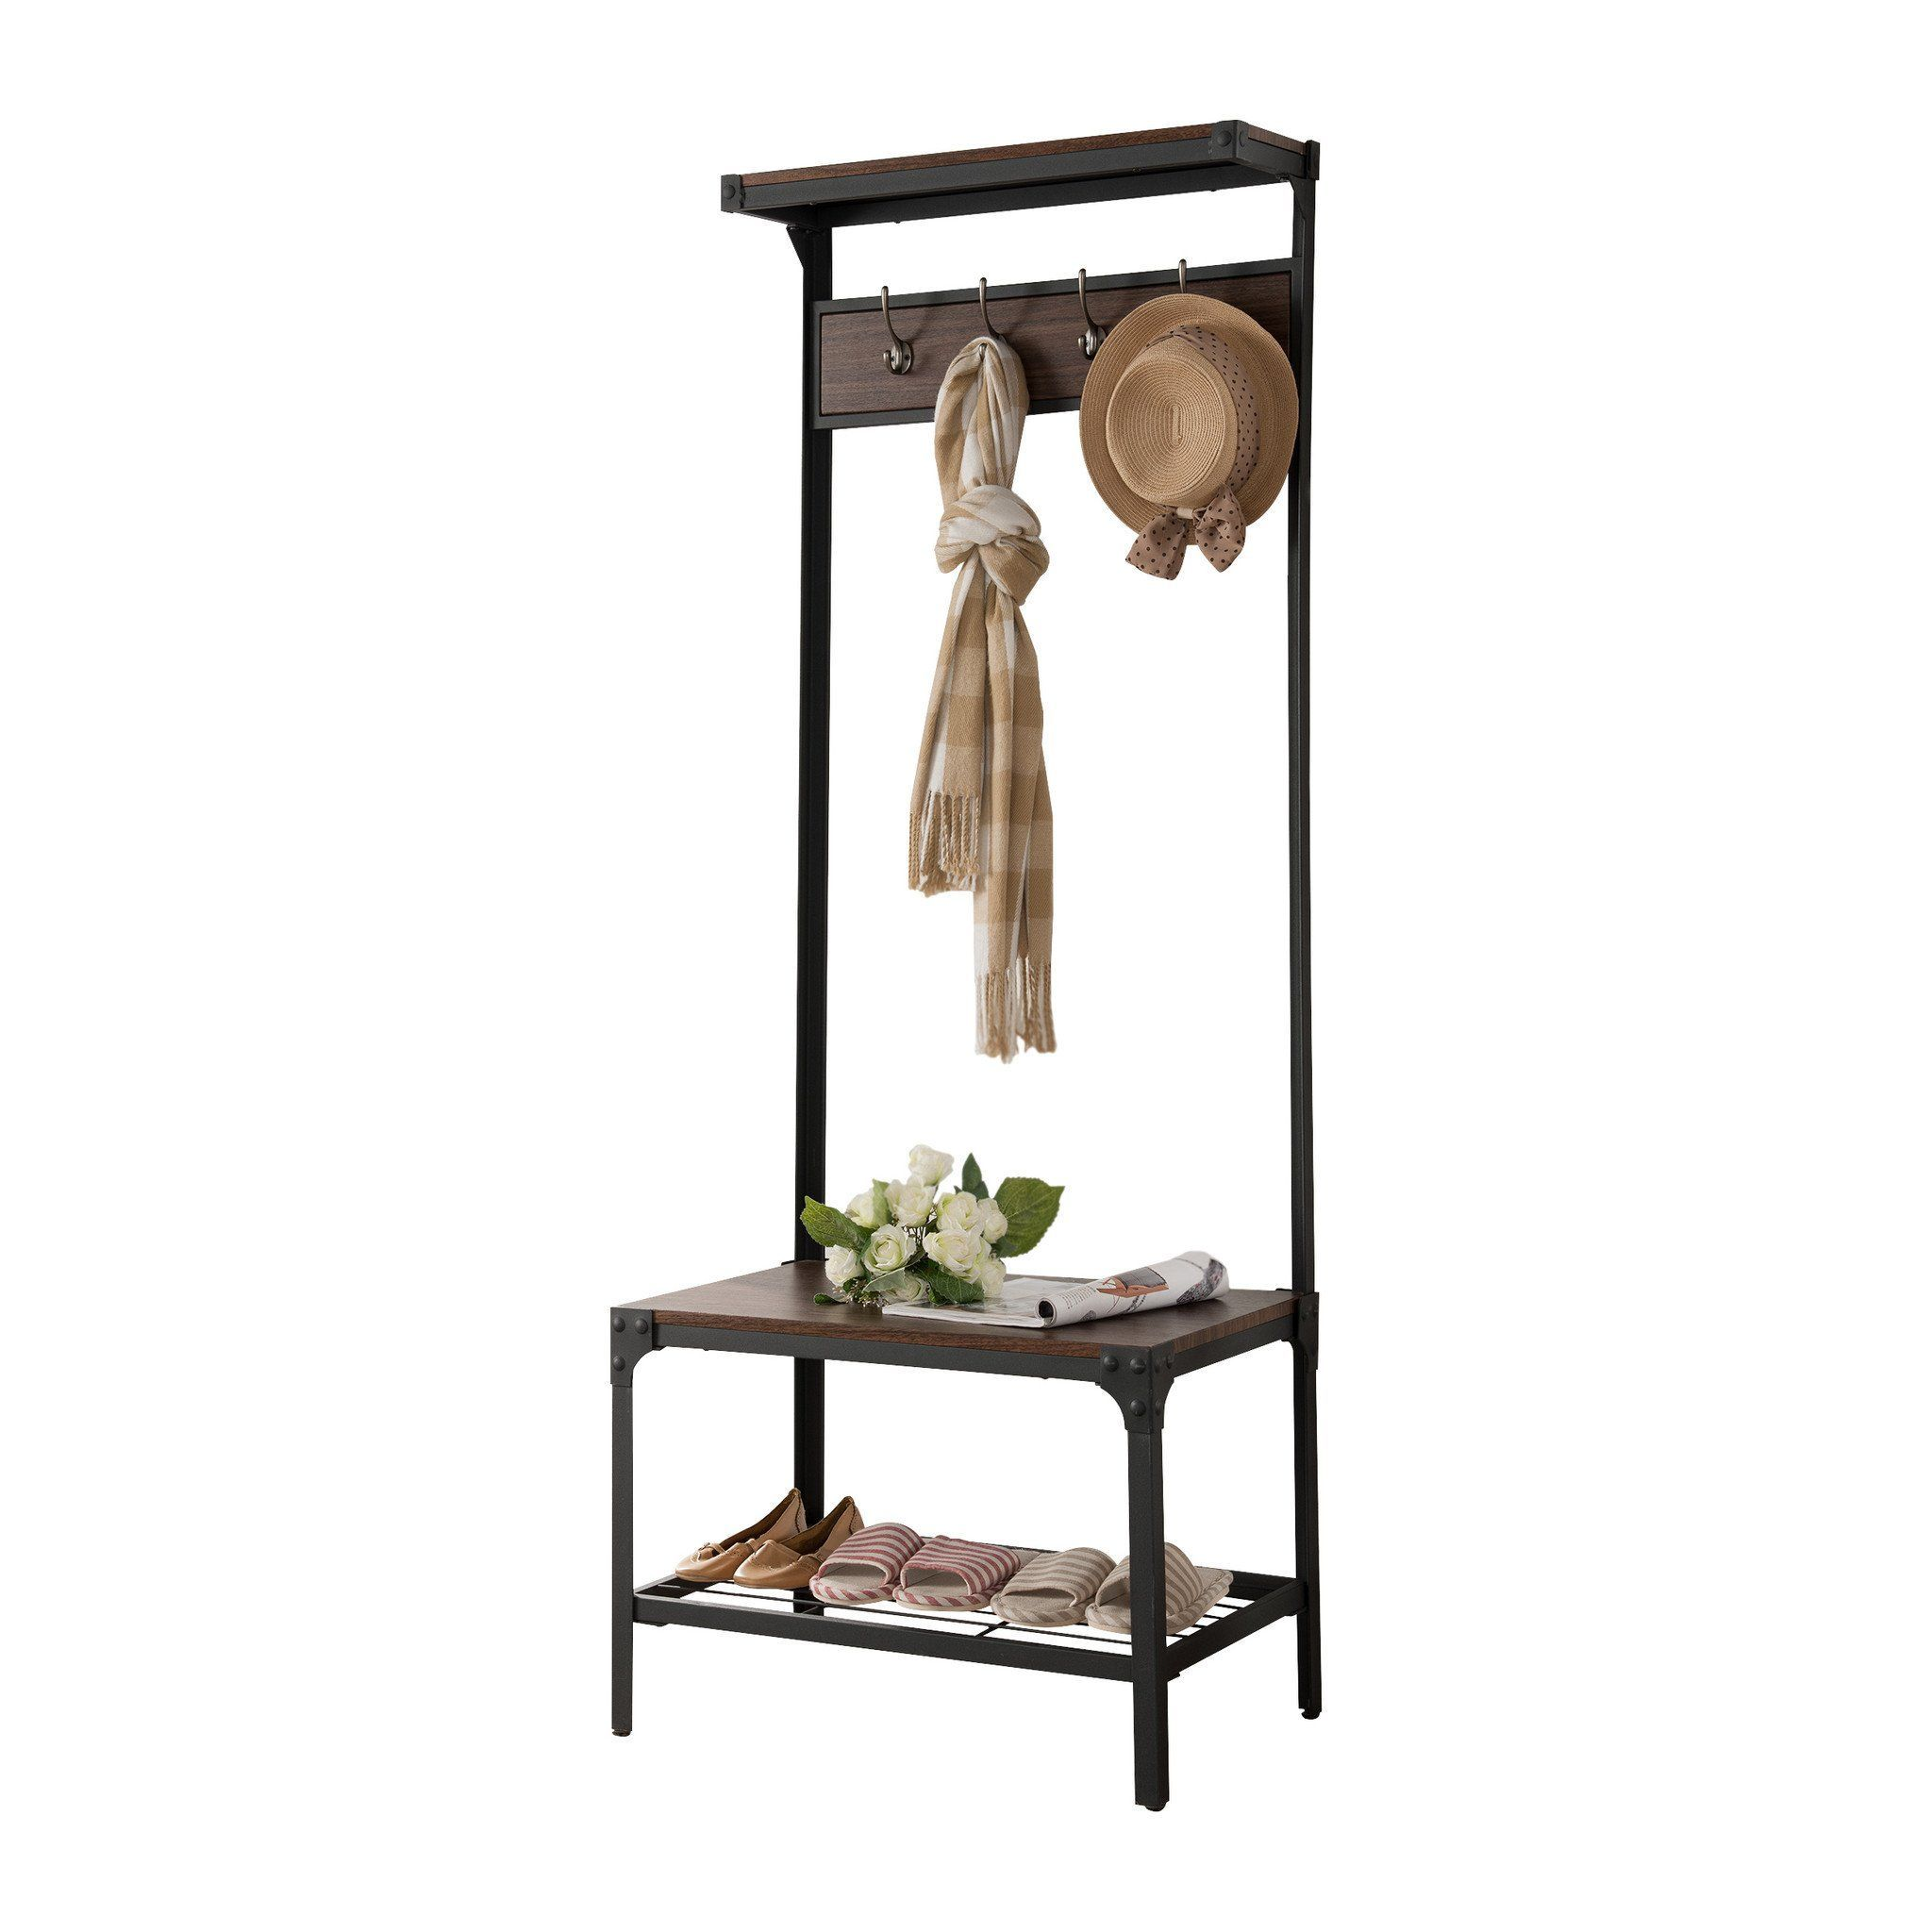 Walnut Wood & Black Metal Frame Contemporary Hallway Hall Tree